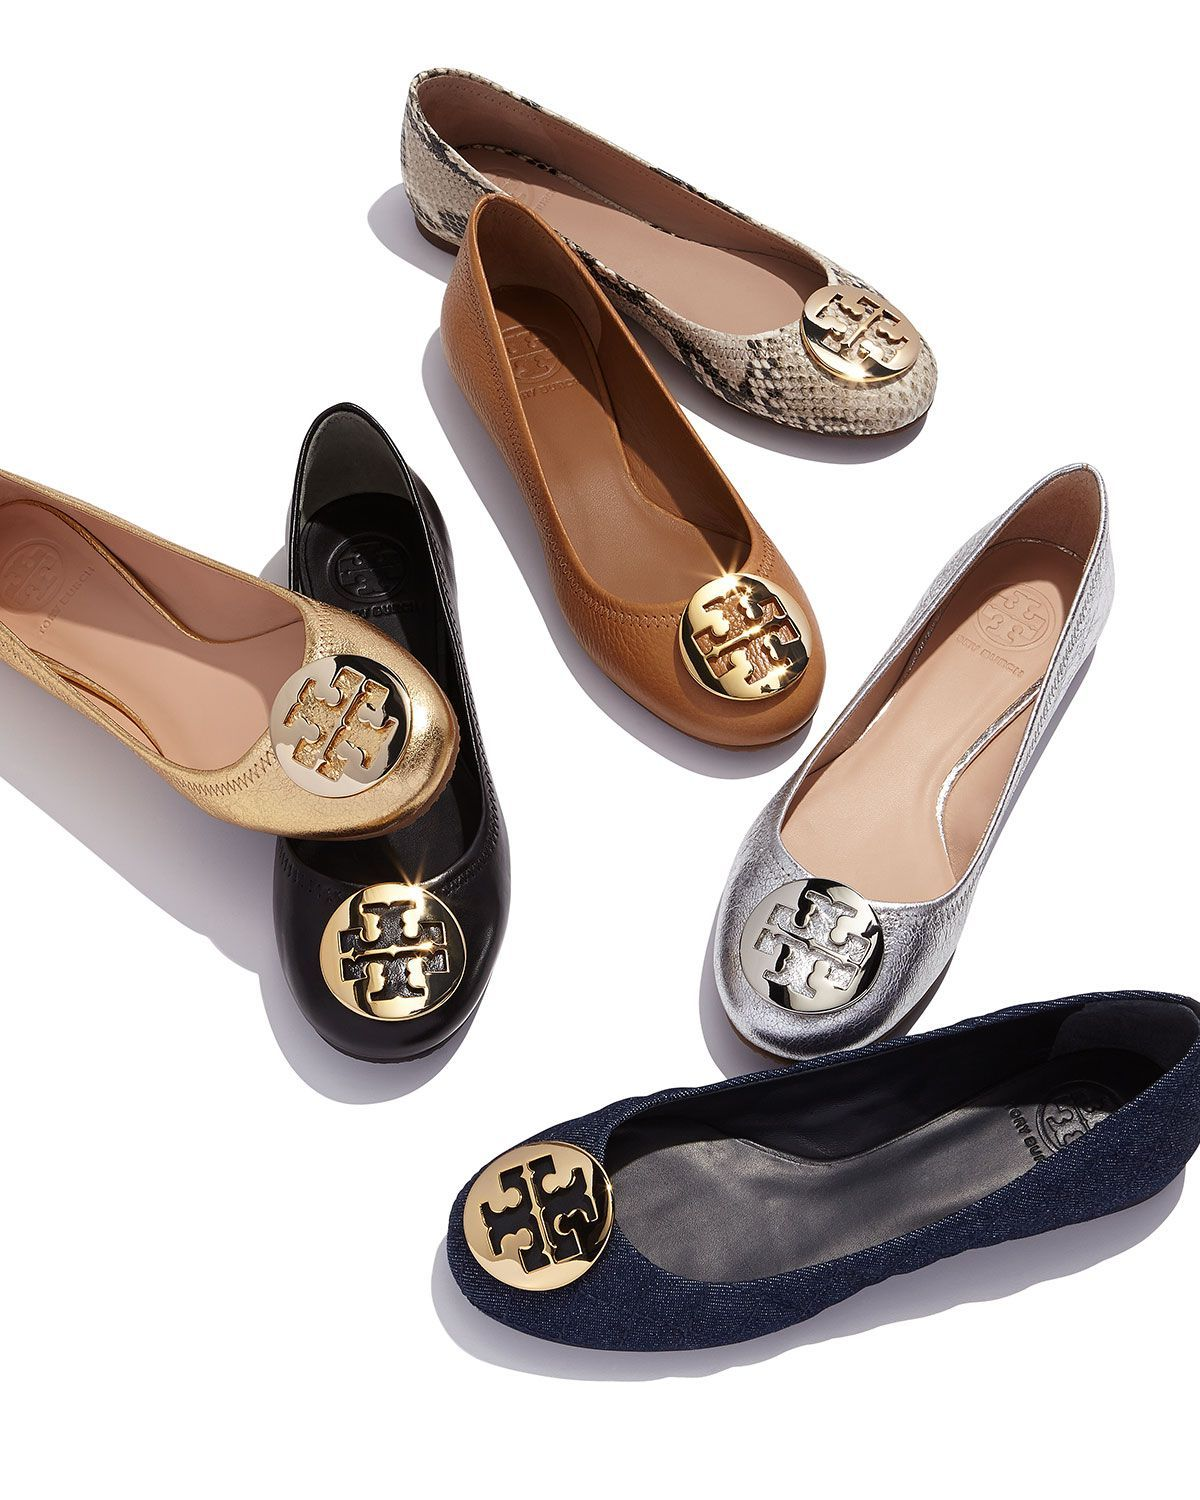 21a293c58414 Tory Burch Reva Leather Ballerina Flats. Love these! Pretty, Polished and  Professional ❤ .